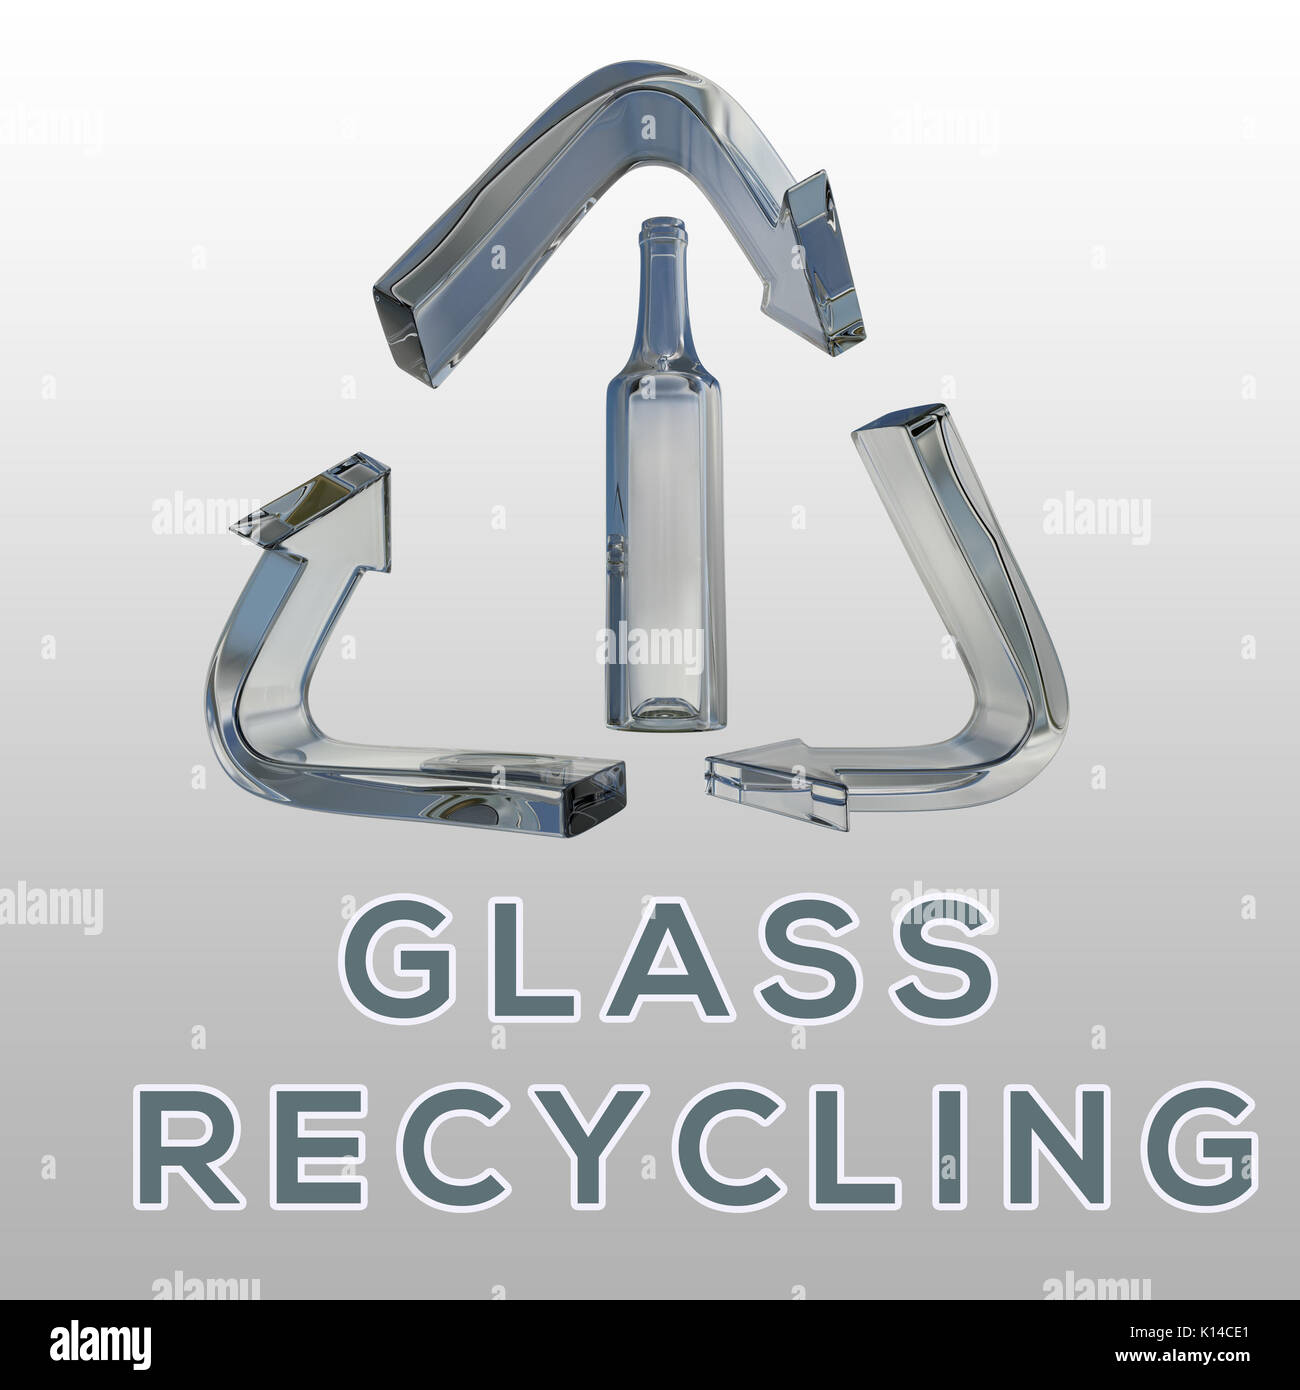 3d Illustration Of Glass Recycling Title With Glass Bottle In A